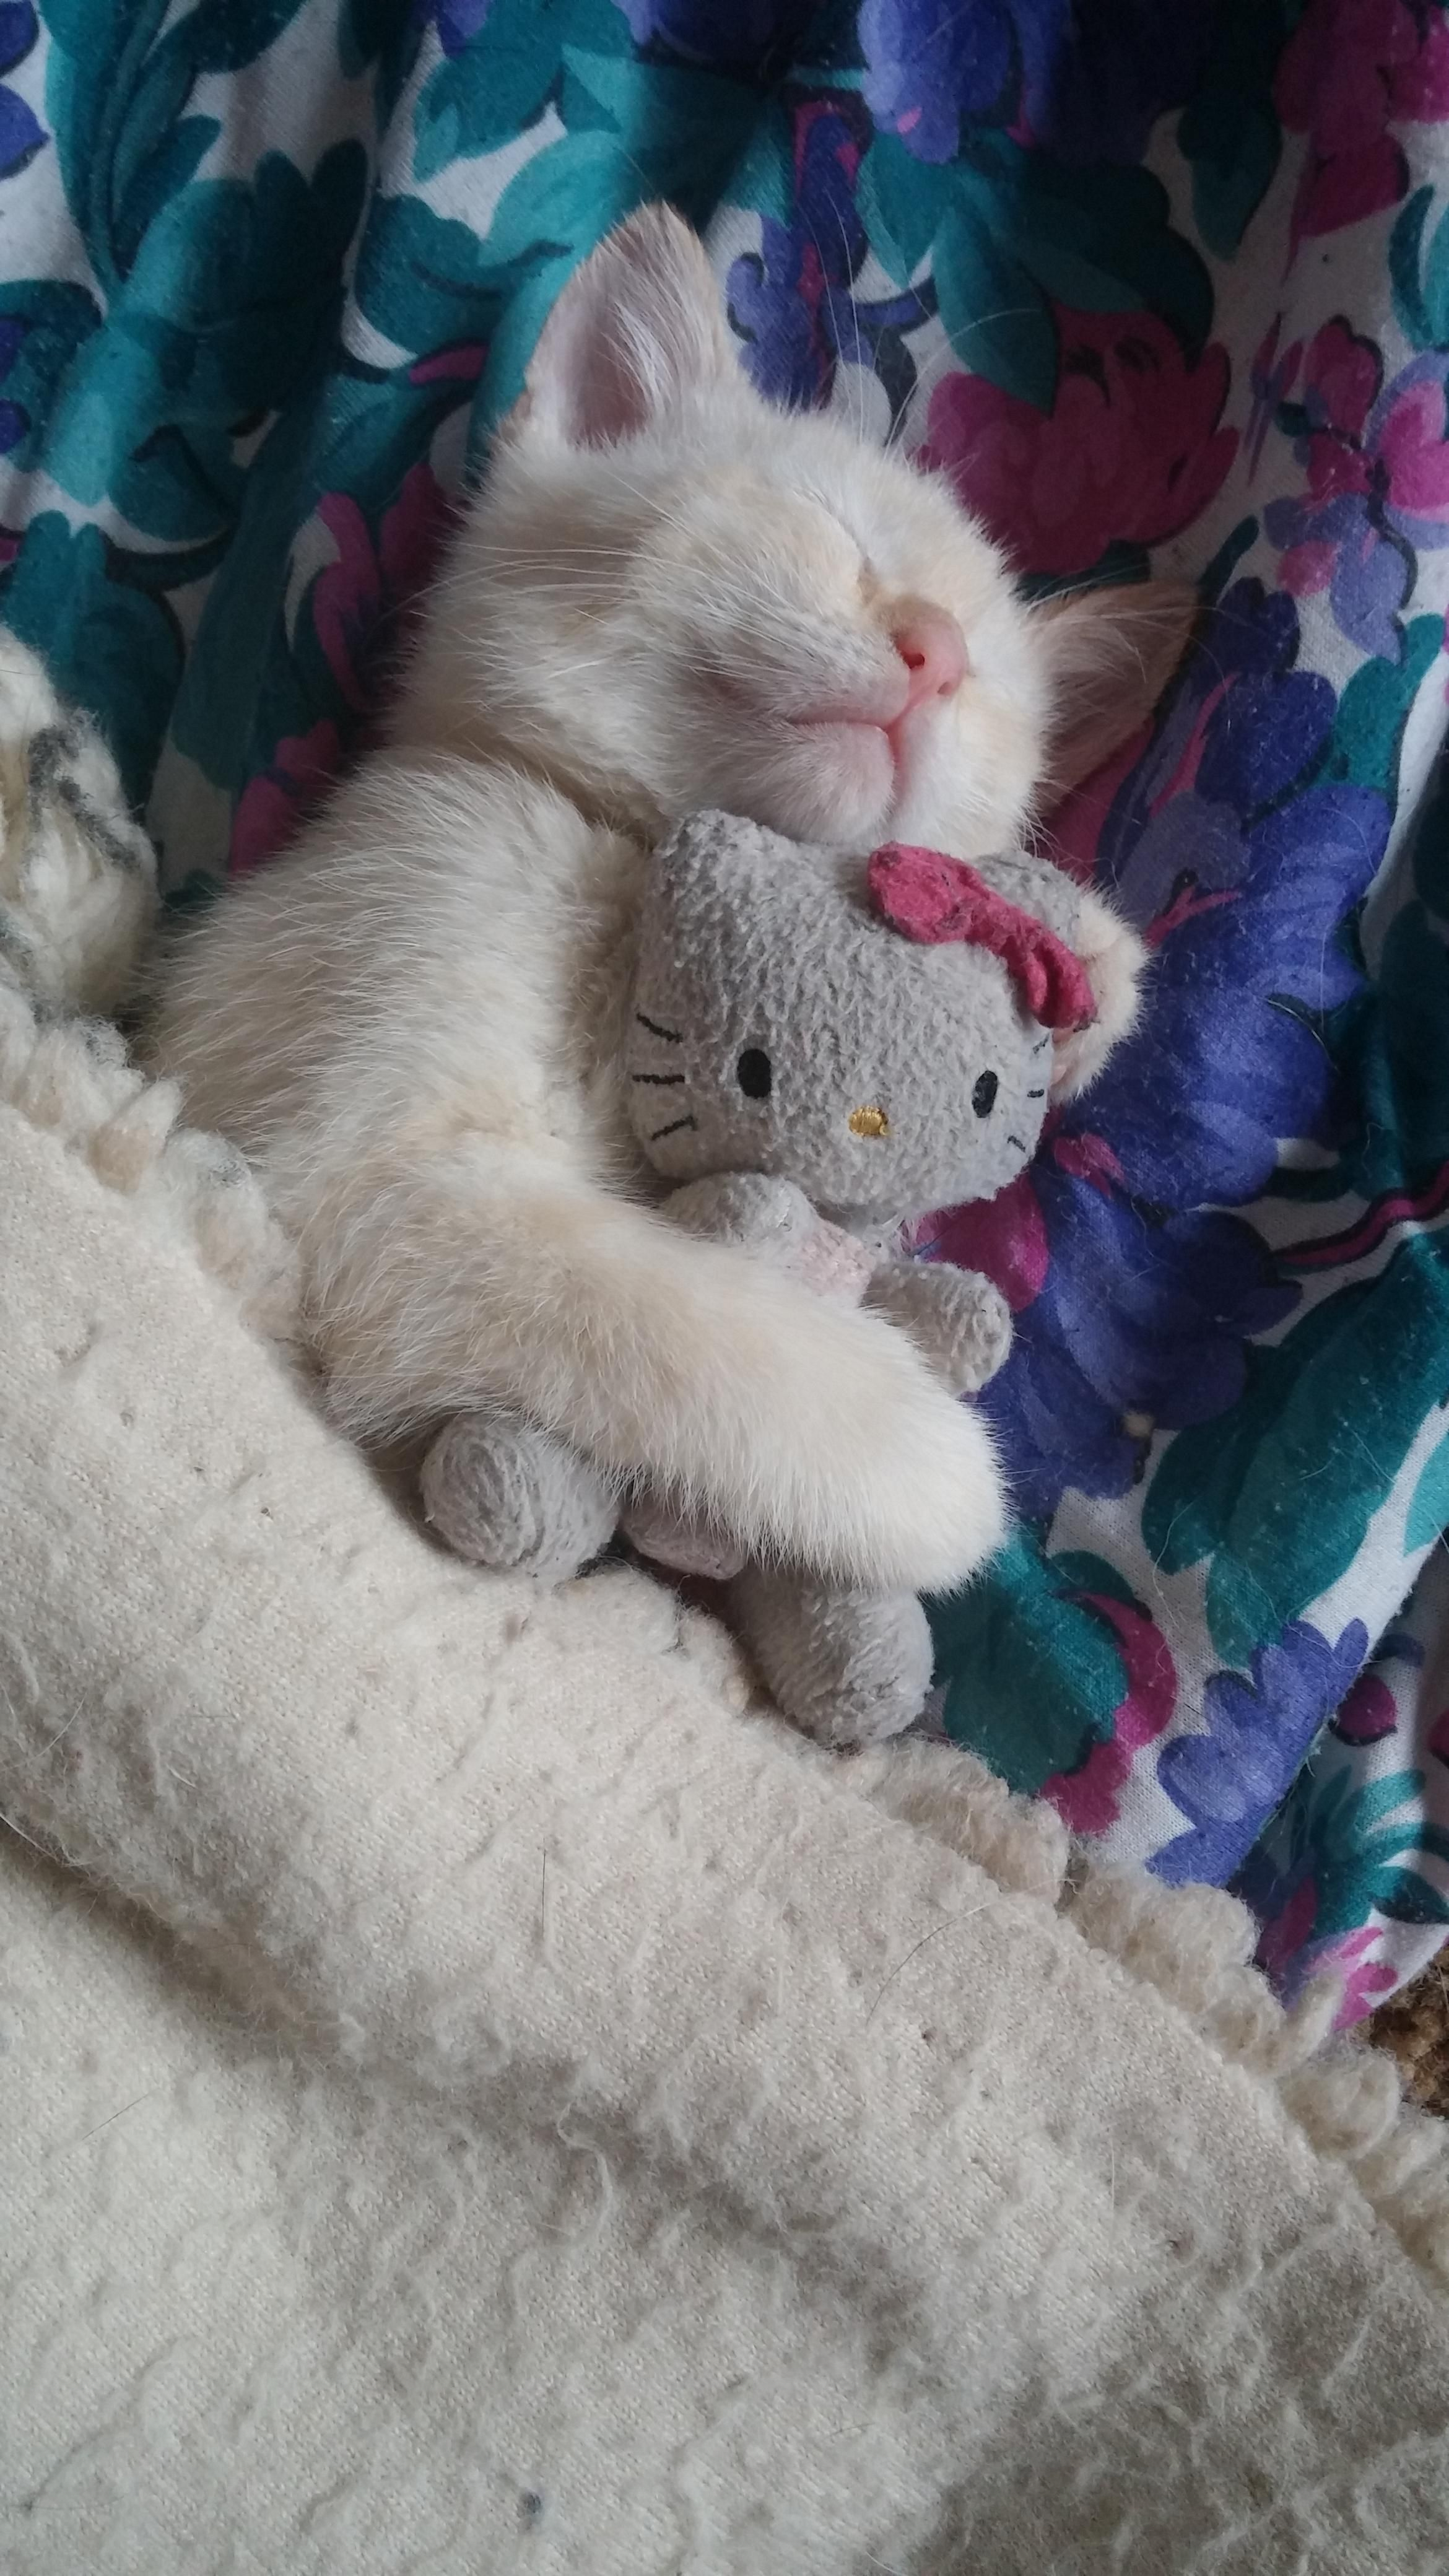 2 Yrs Later And He Still Sleeps With His Toys Cute Cats And Kittens Kittens Cutest Cute Cat Gif